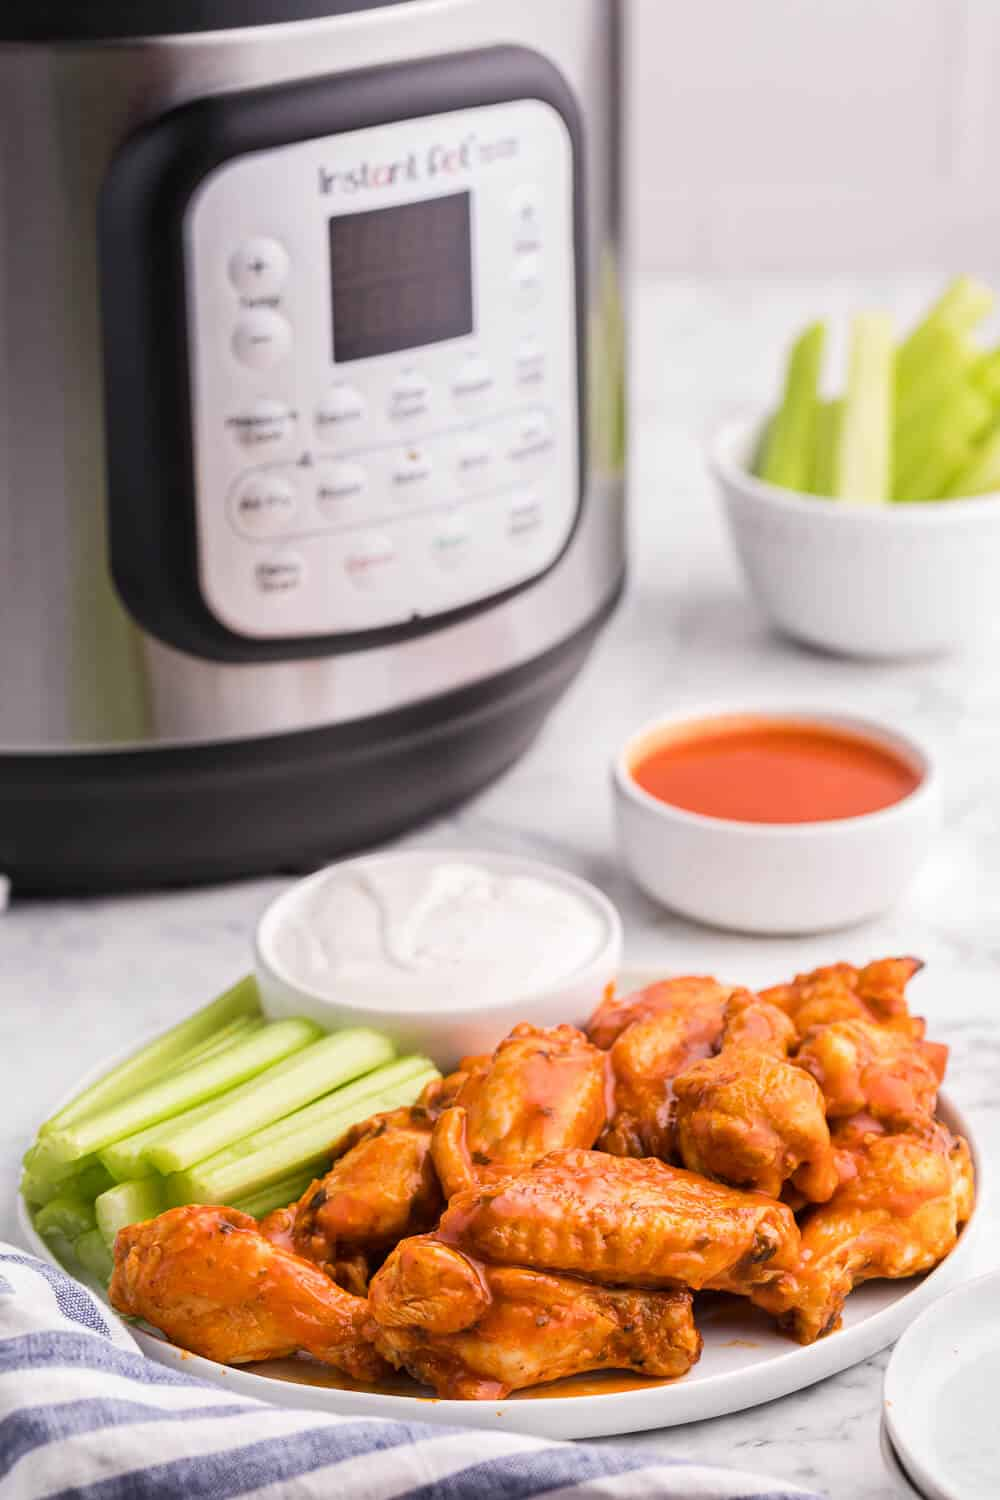 A plate of buffalo chicken wings with celery and dip and an air fryer in the background